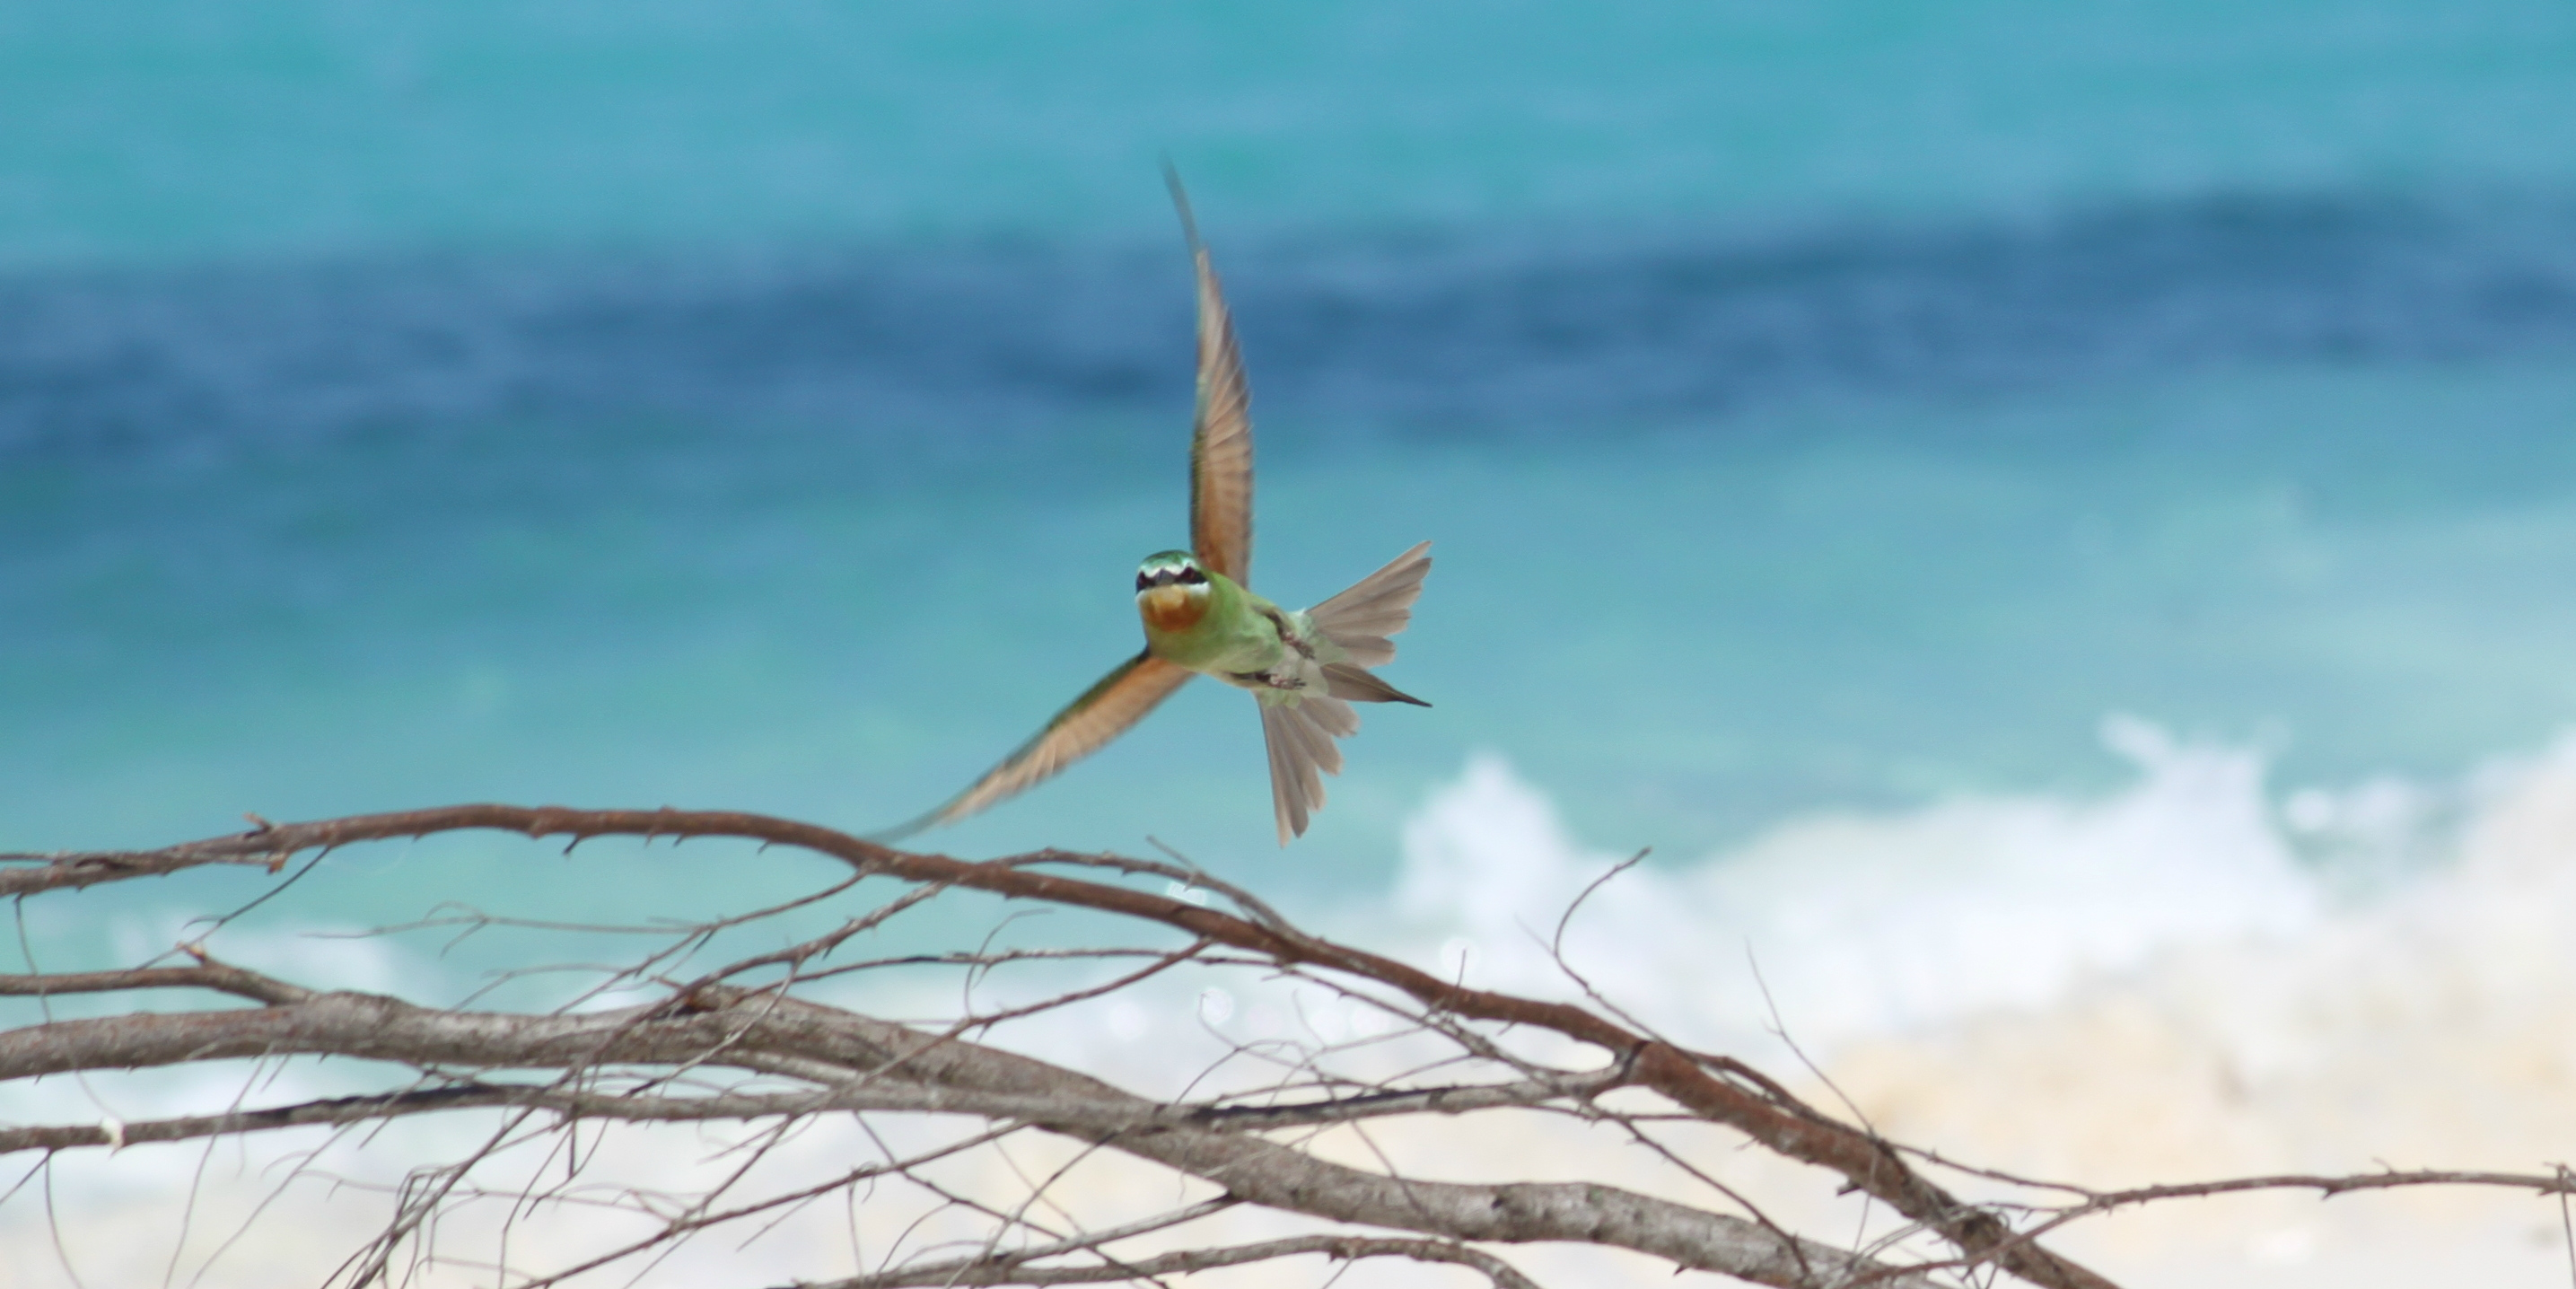 A bee-eater flies through Bird Island, an ornithologist's haven for conservation in the Seychelles archipelago.